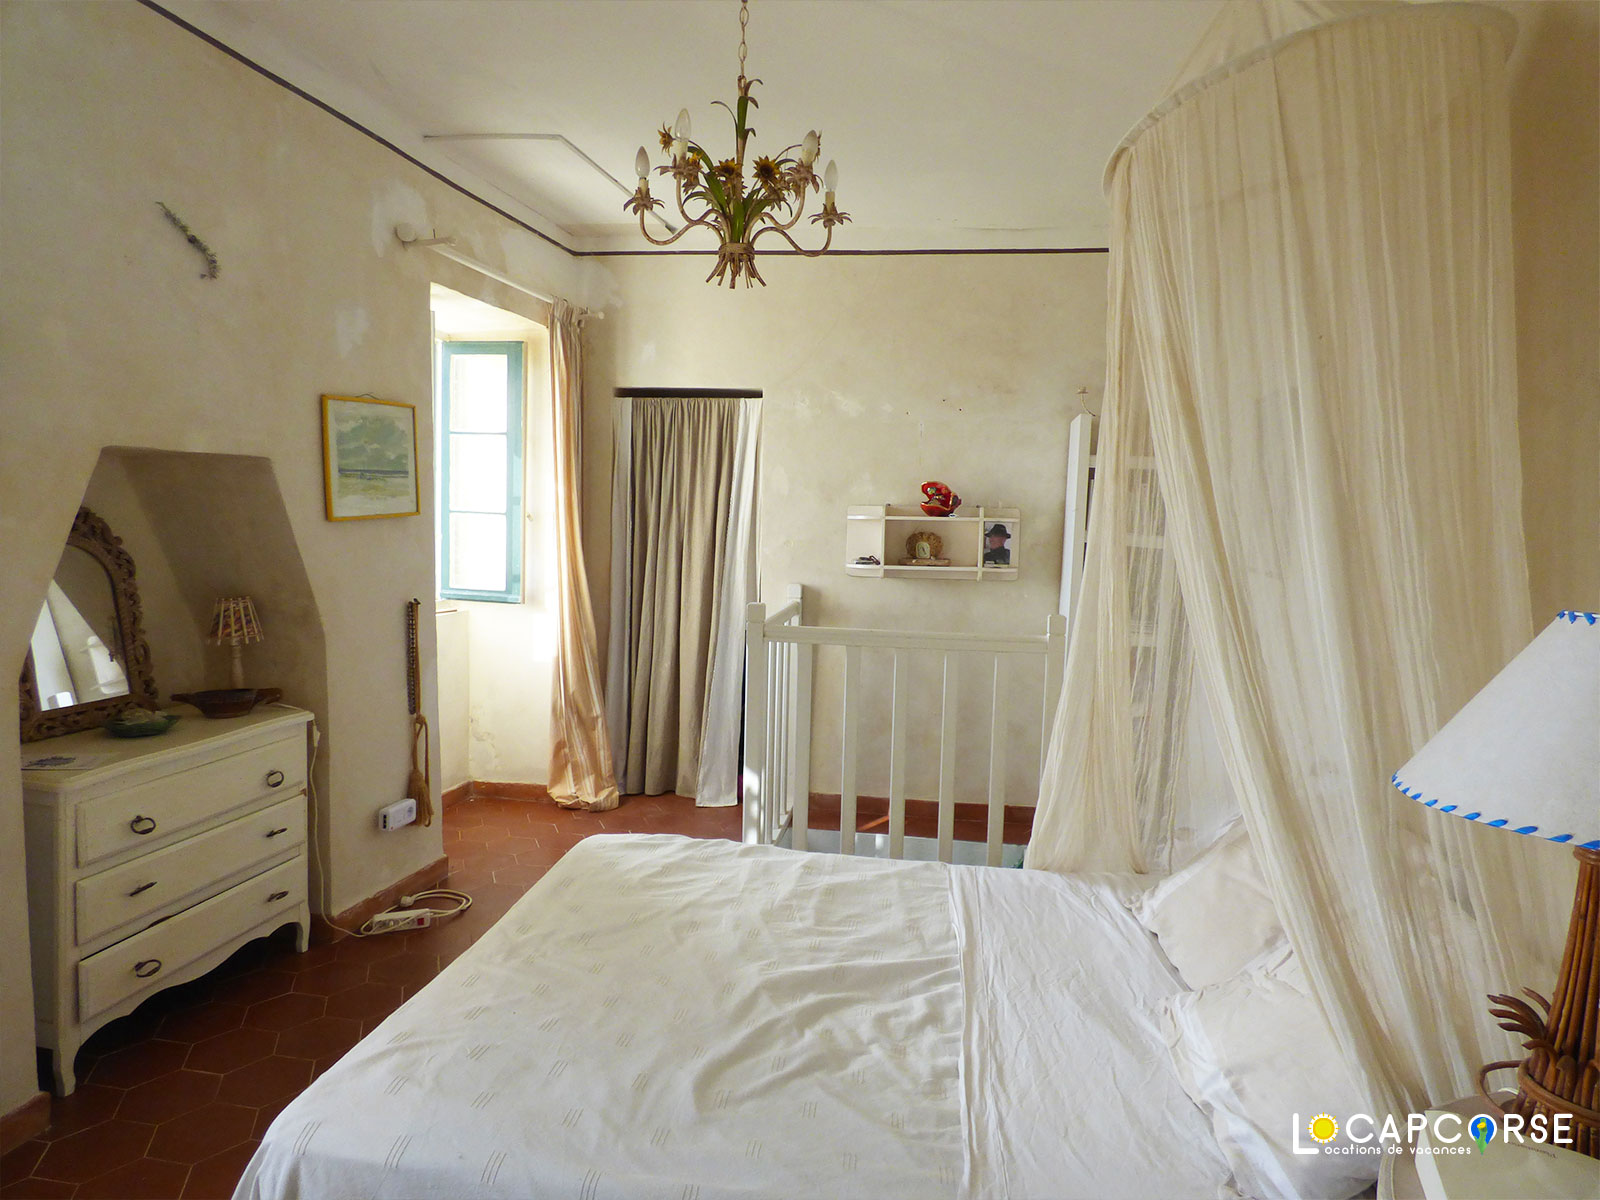 Locations Cap Corse - Another view of the bedroom of the little house